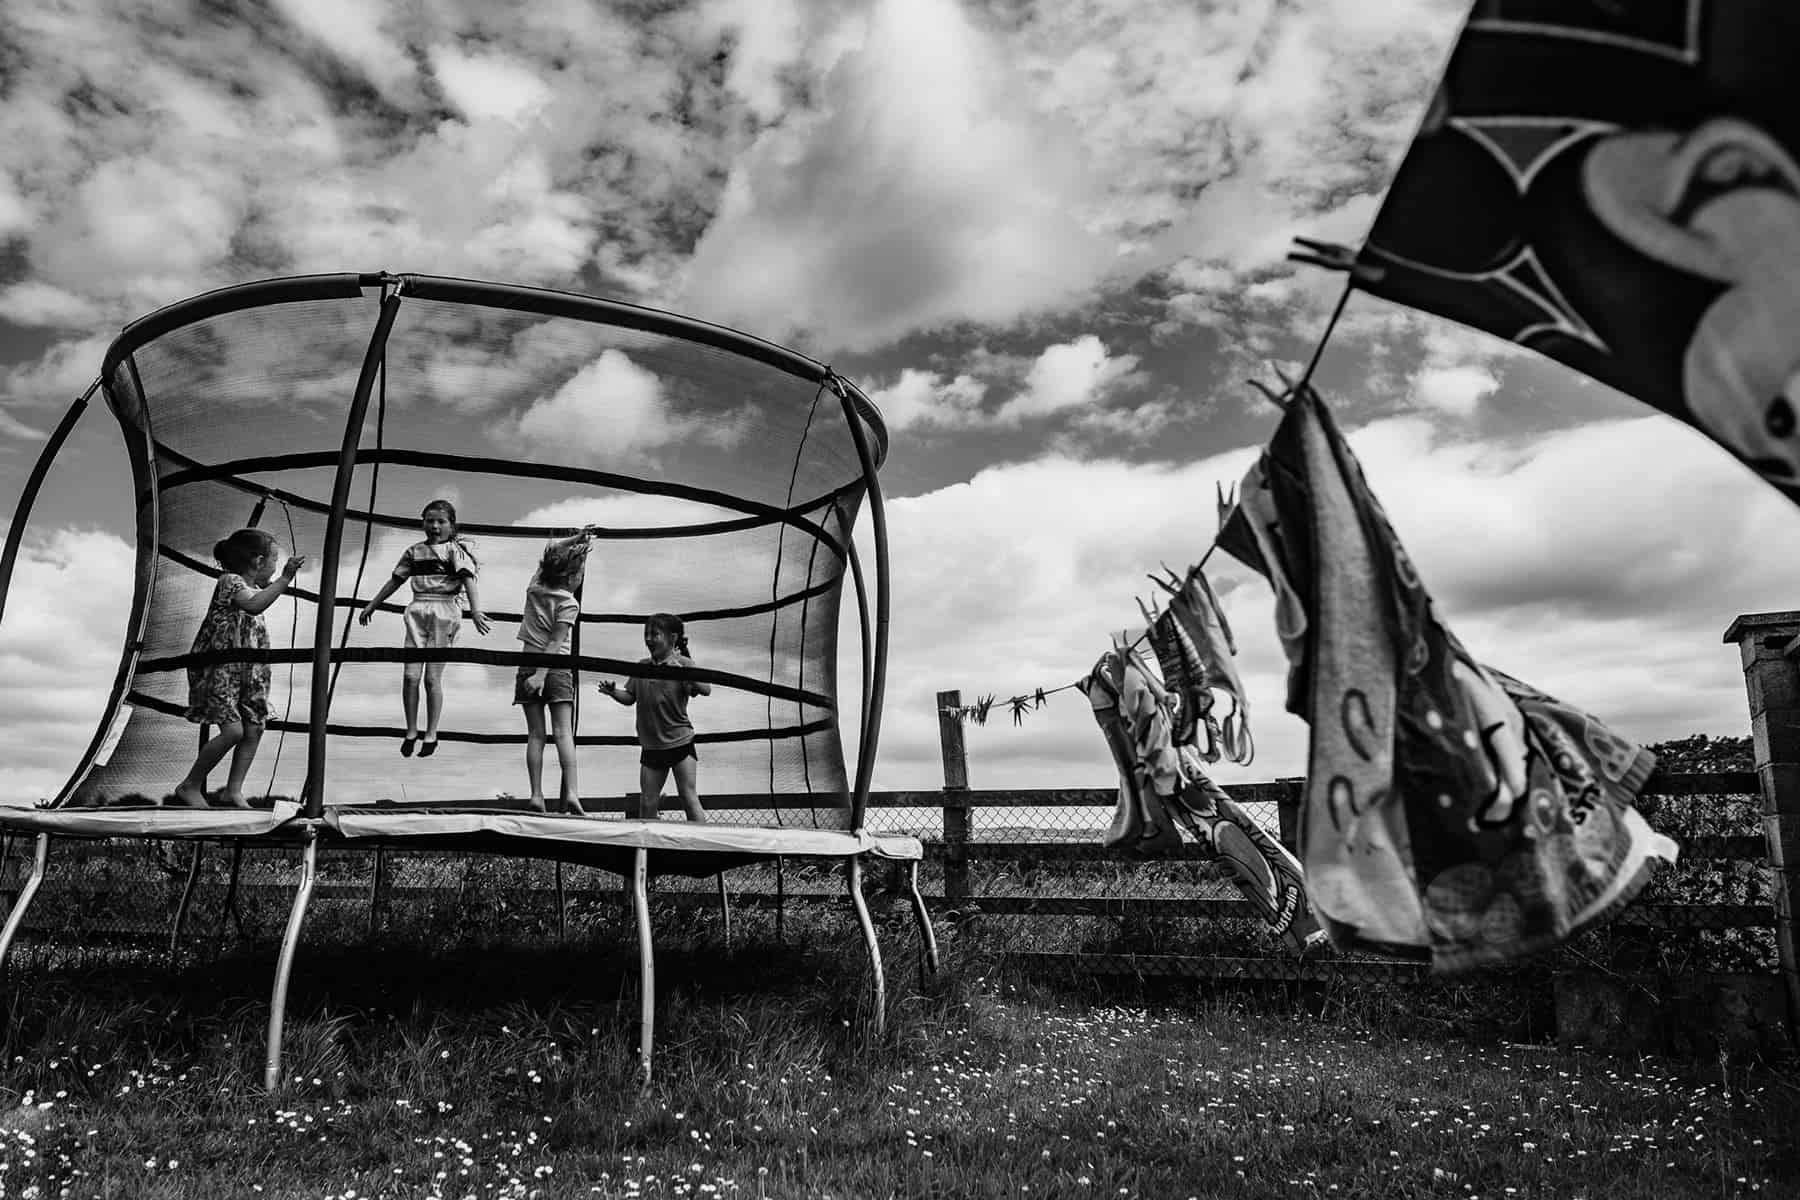 4 kids jumping on a trampoline with clouds behind them